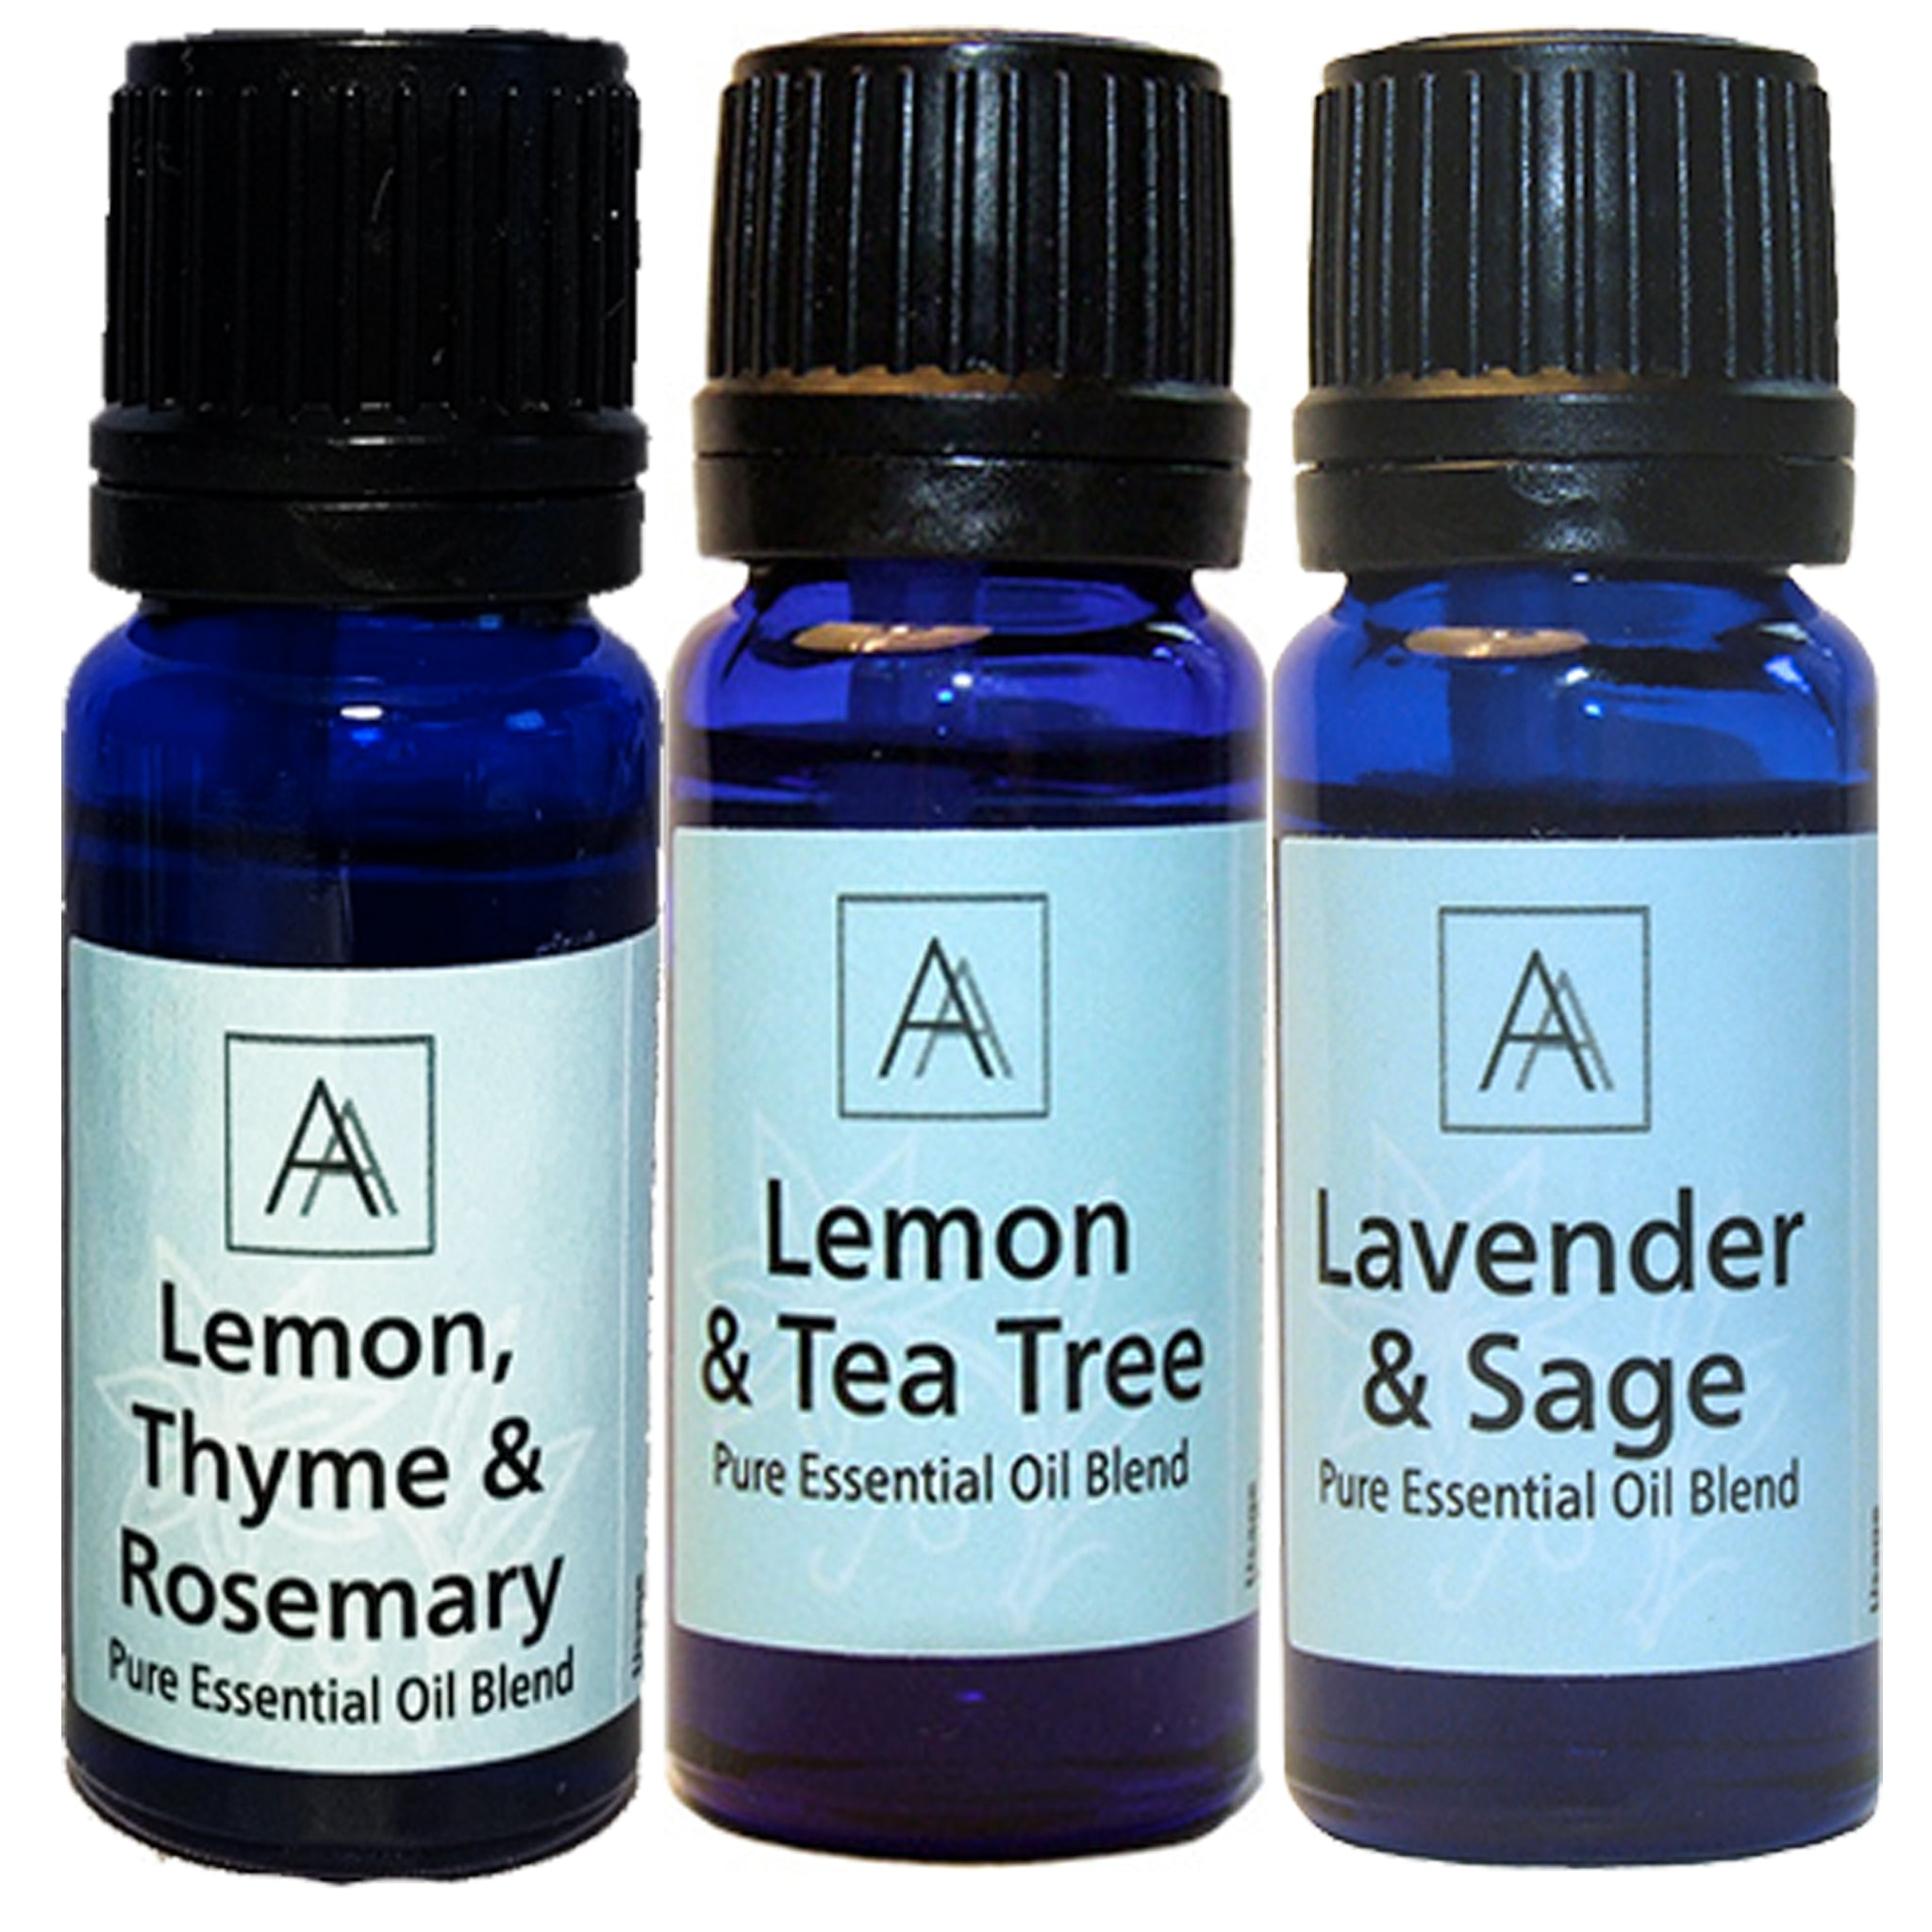 Lavender & Sage, Lemon & Tea Tree, Lemon, Thyme & Rosemary